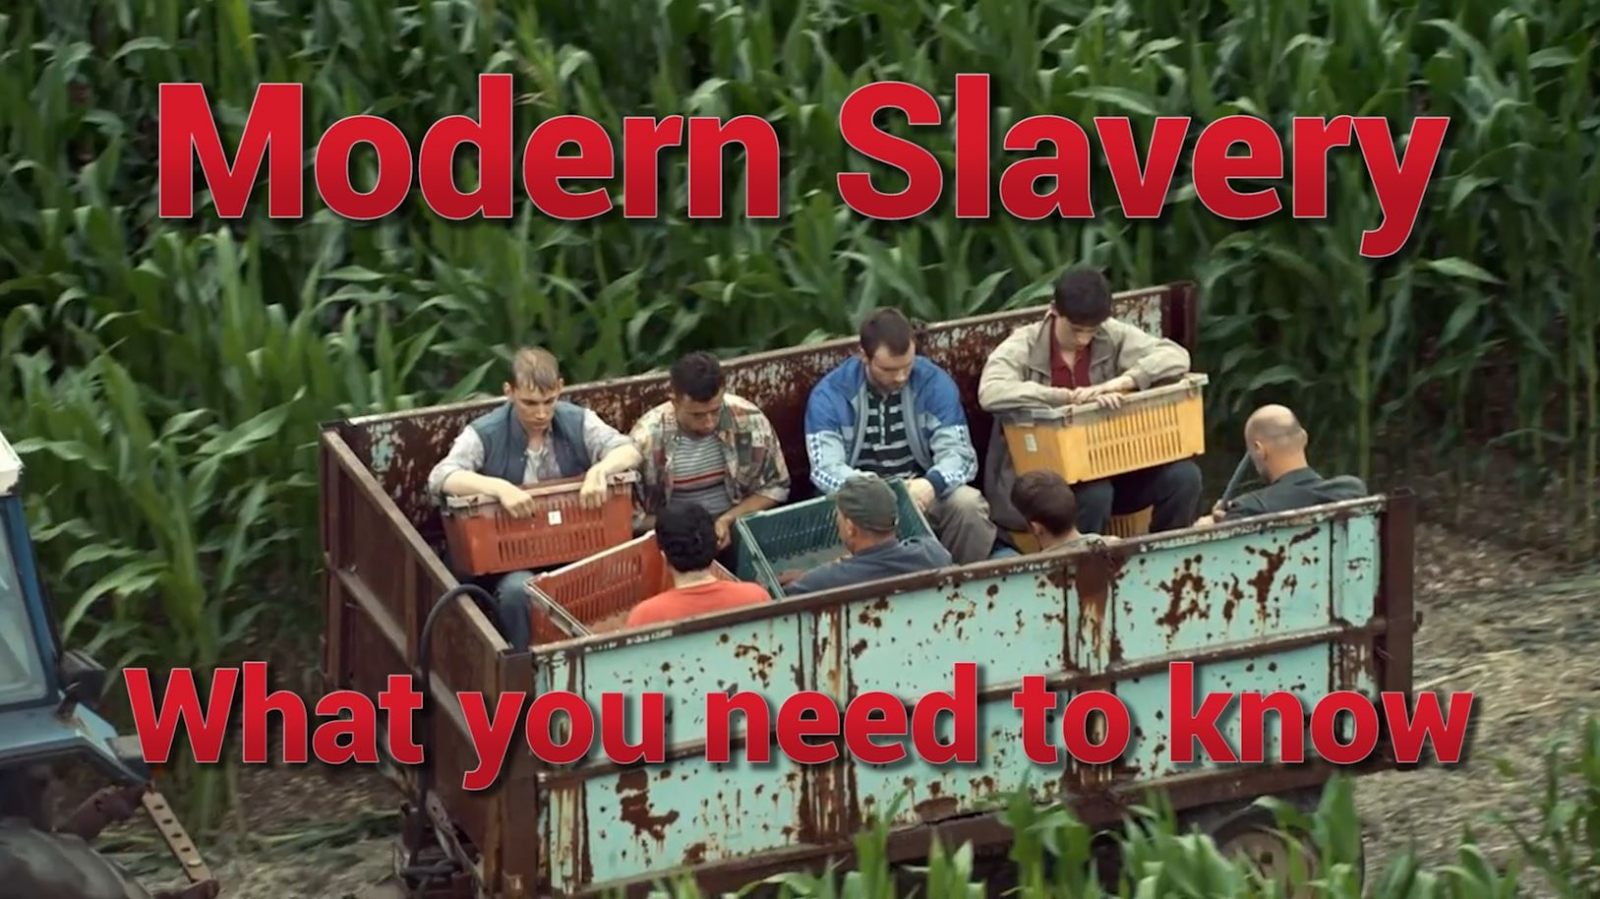 Modern slavery – what you need to know